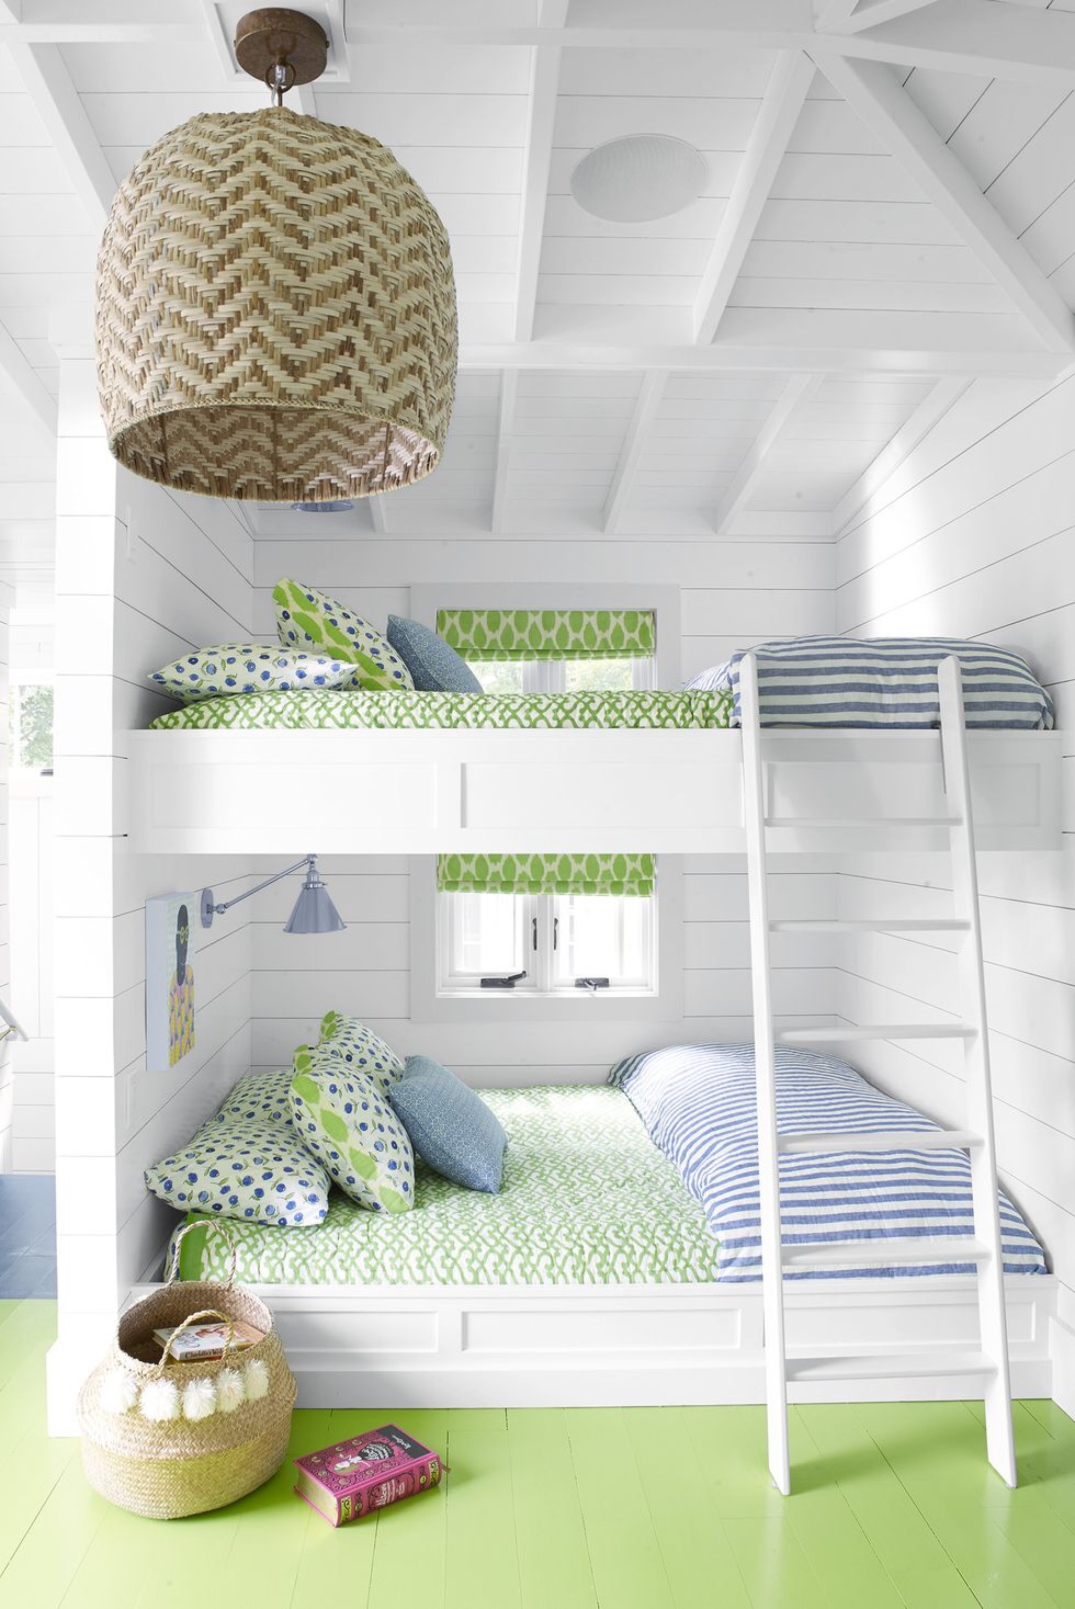 Bedroom_kids_room_lime_white_Article_from_House_Beautiful_summer_home_in_Ludington_Michigan_decor_decoration_blue_white_beach_decor_interiors_and_more_vacations.jpg